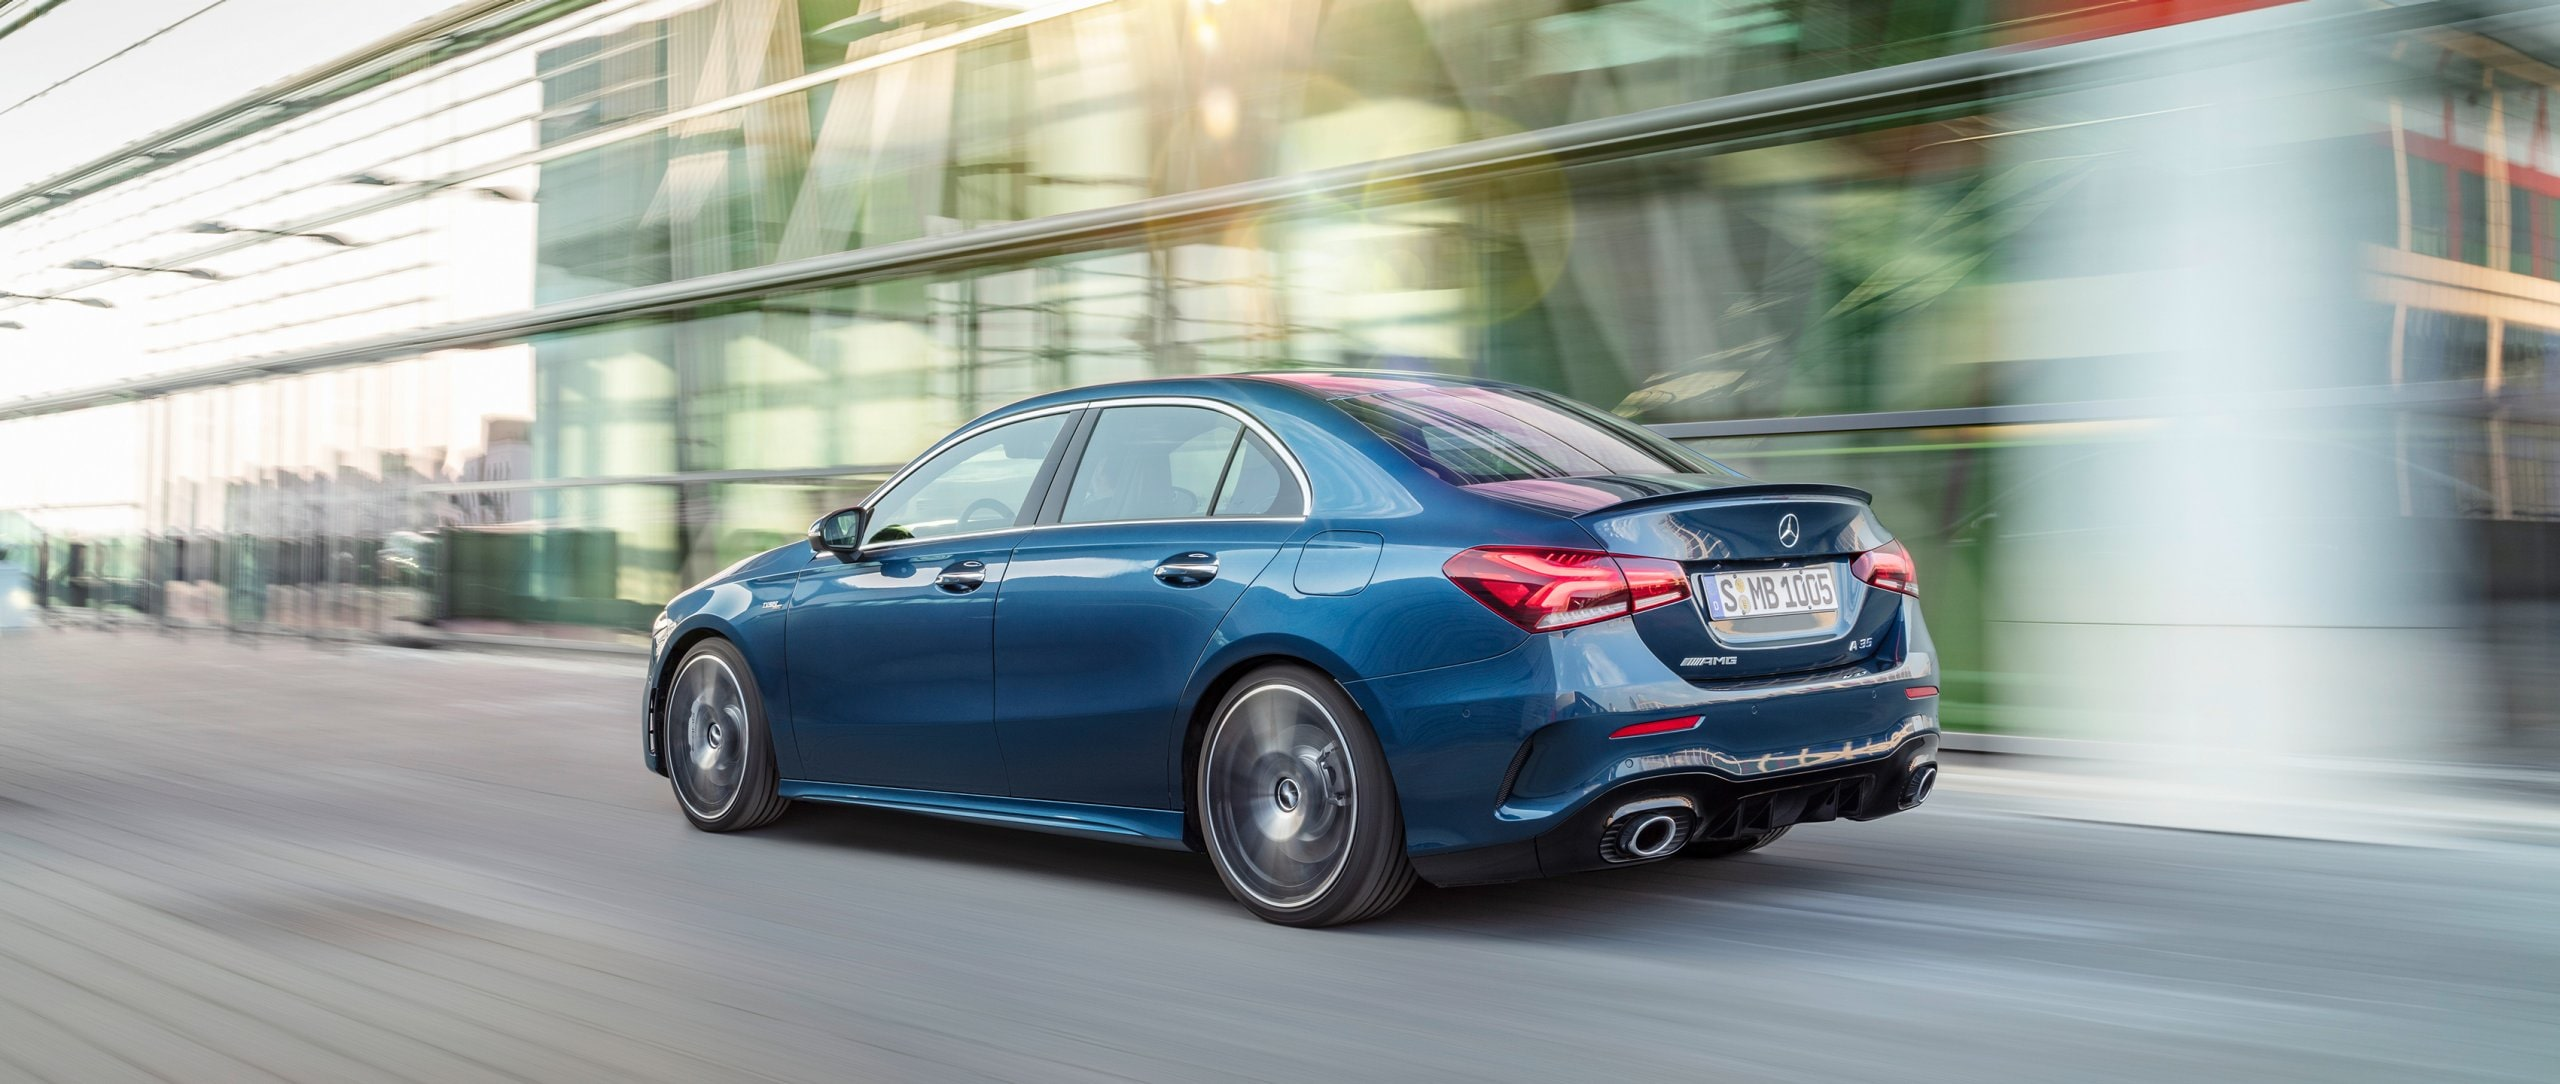 The new 2019 Mercedes-AMG A 35 4MATIC Saloon (V 177) in denim blue metallic in rear view.